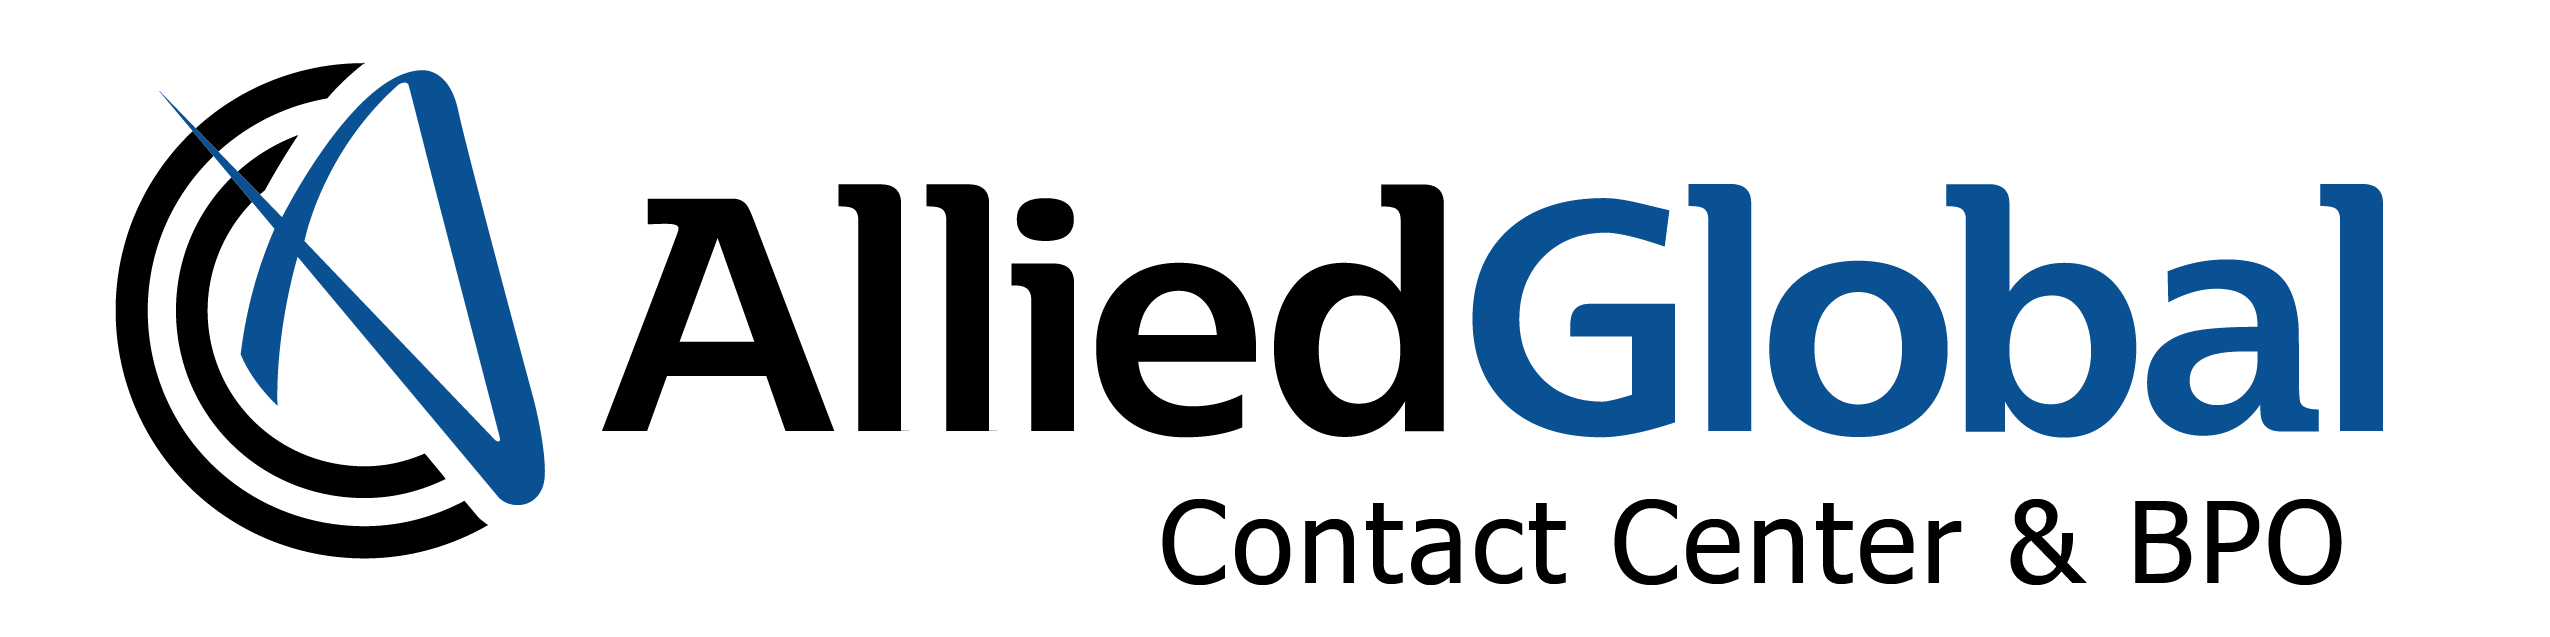 Allied Global